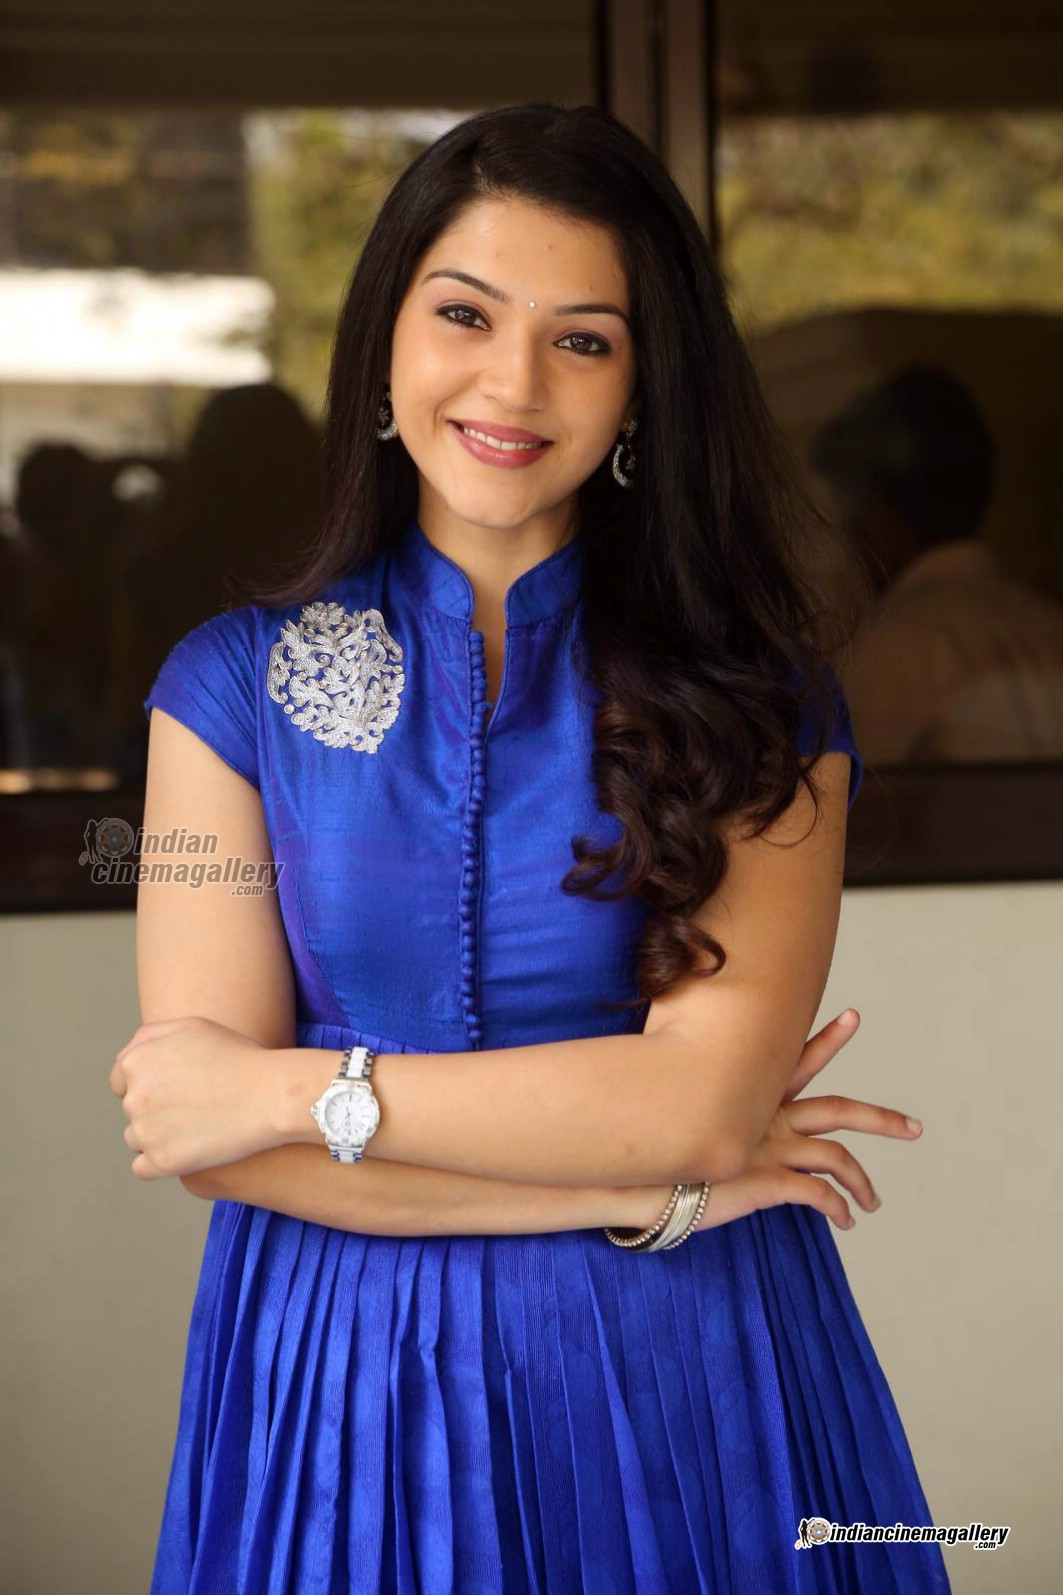 mehreen-in-blue-dress-february-2016-stills-151265